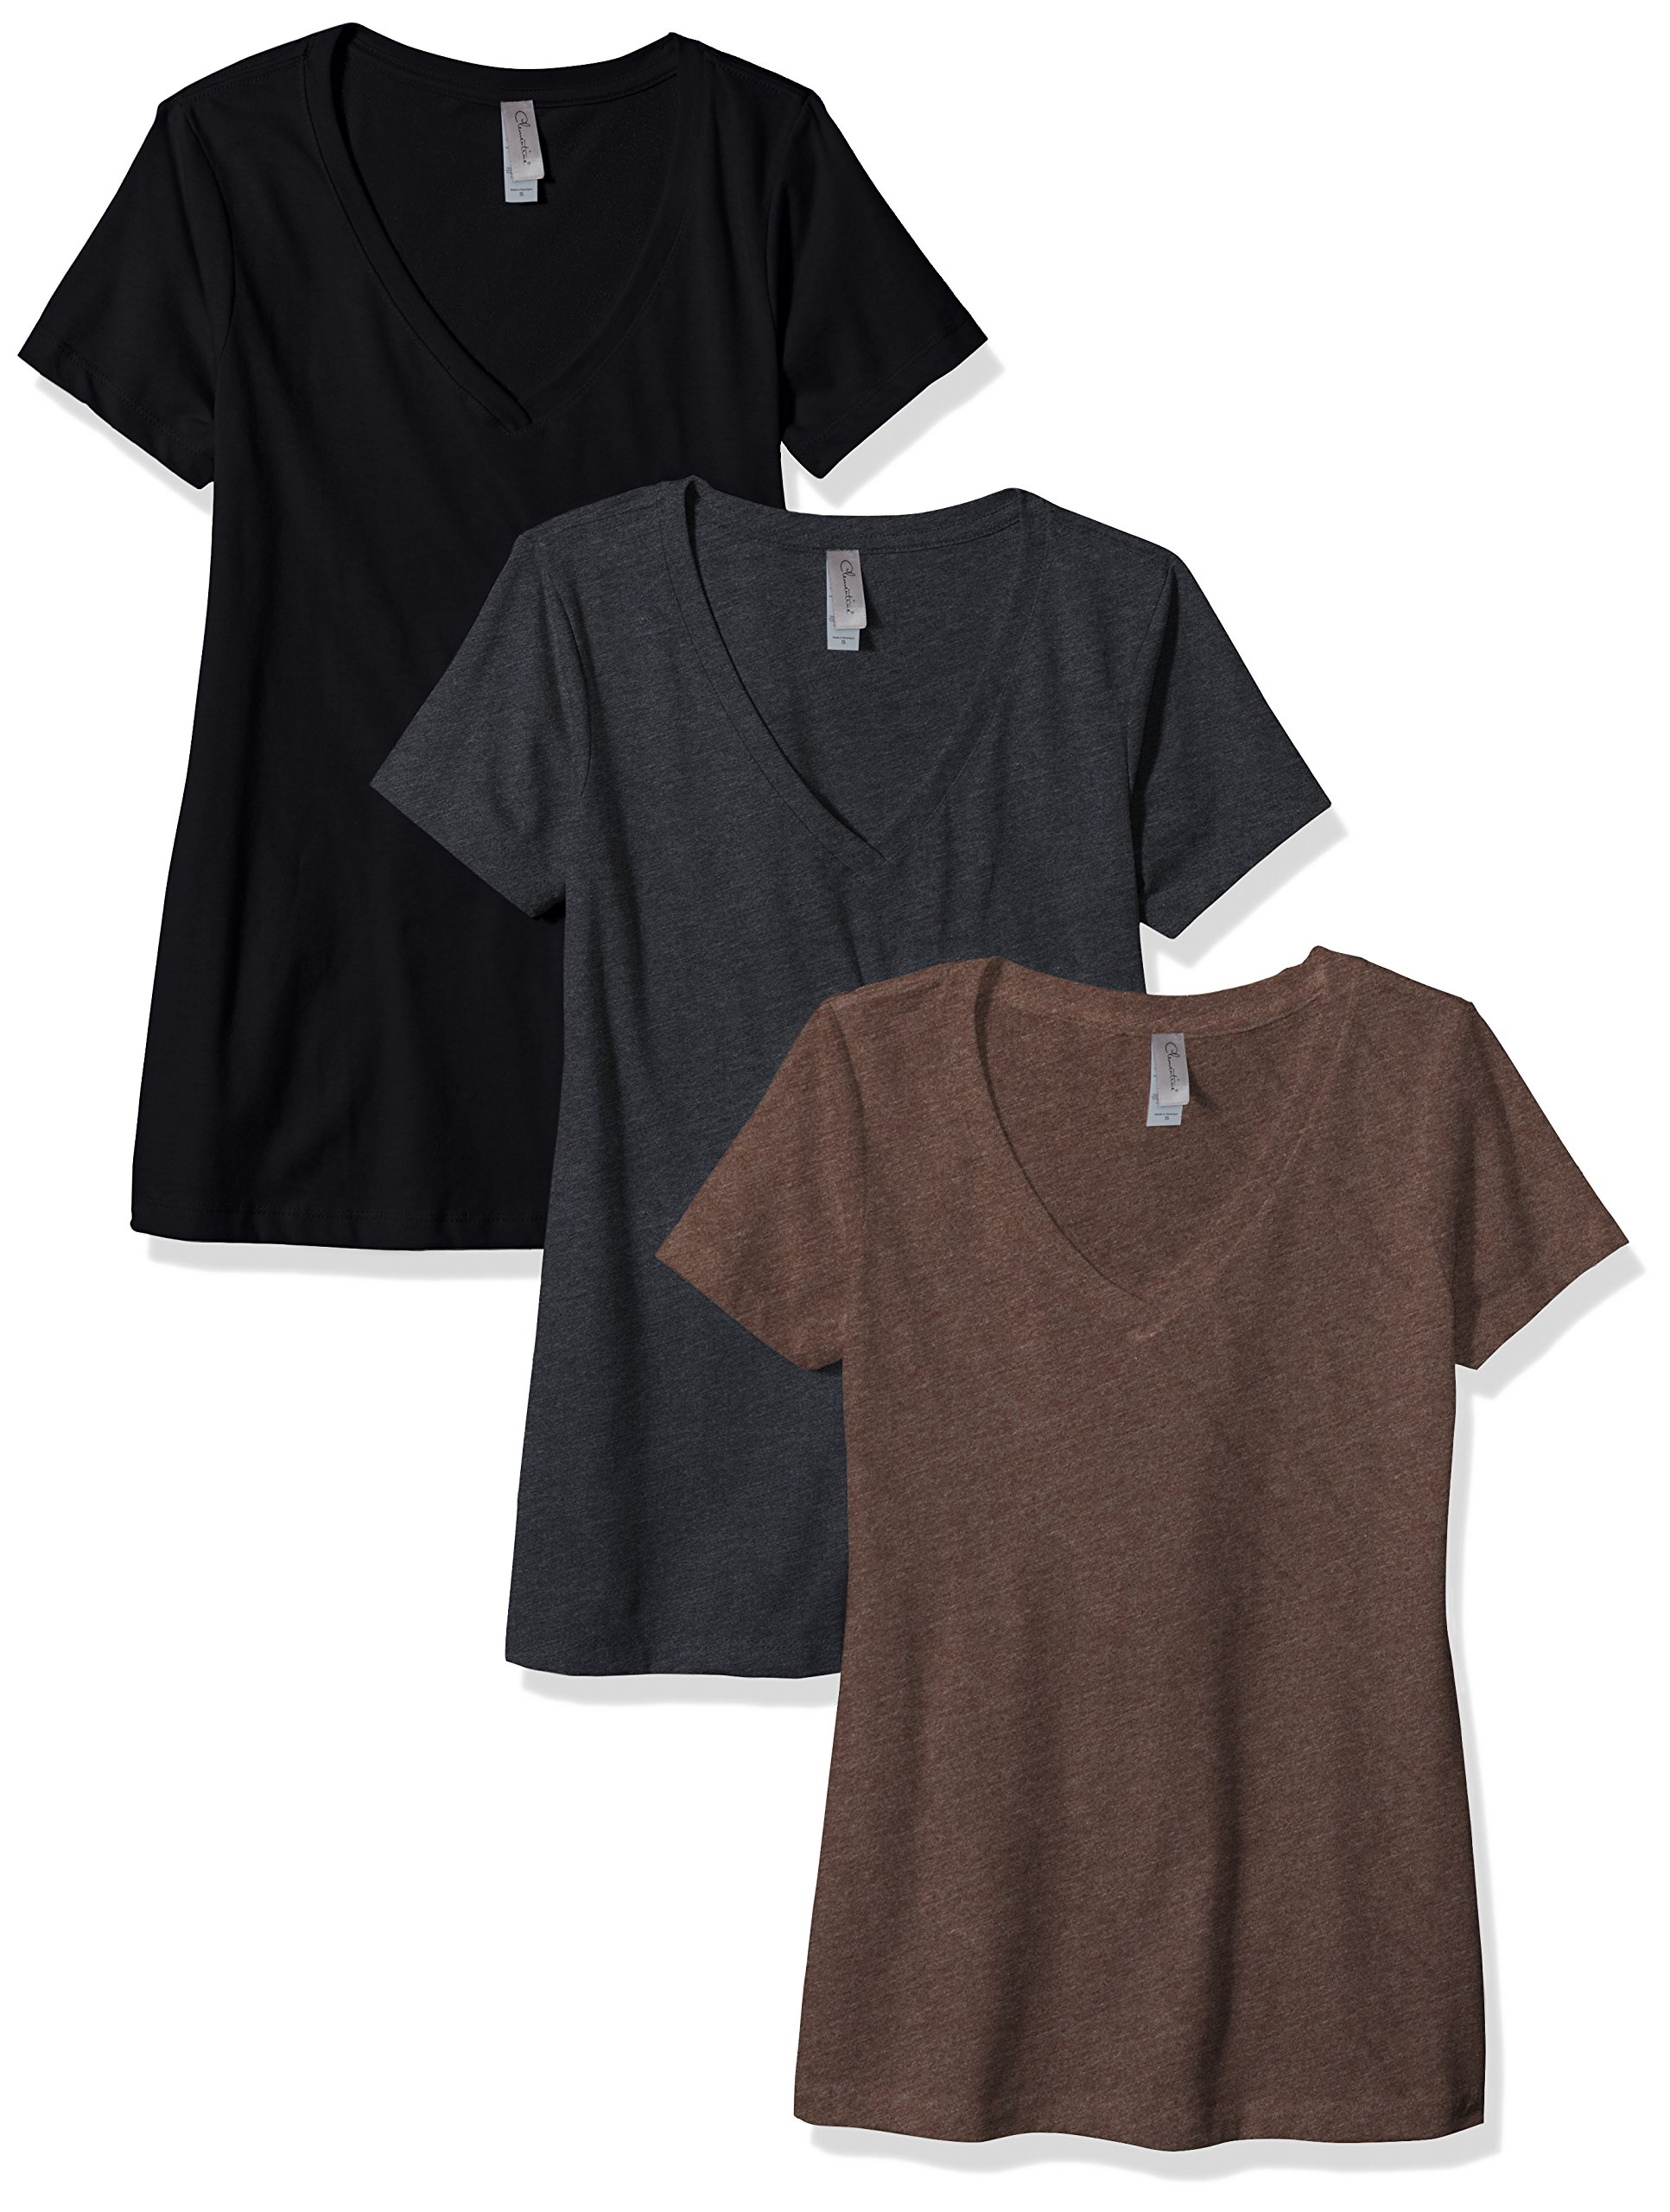 Clementine Apparel Women's Petite Plus Deep V Neck Tee (Pack of 3), Black/Charcoal/Espresso, L